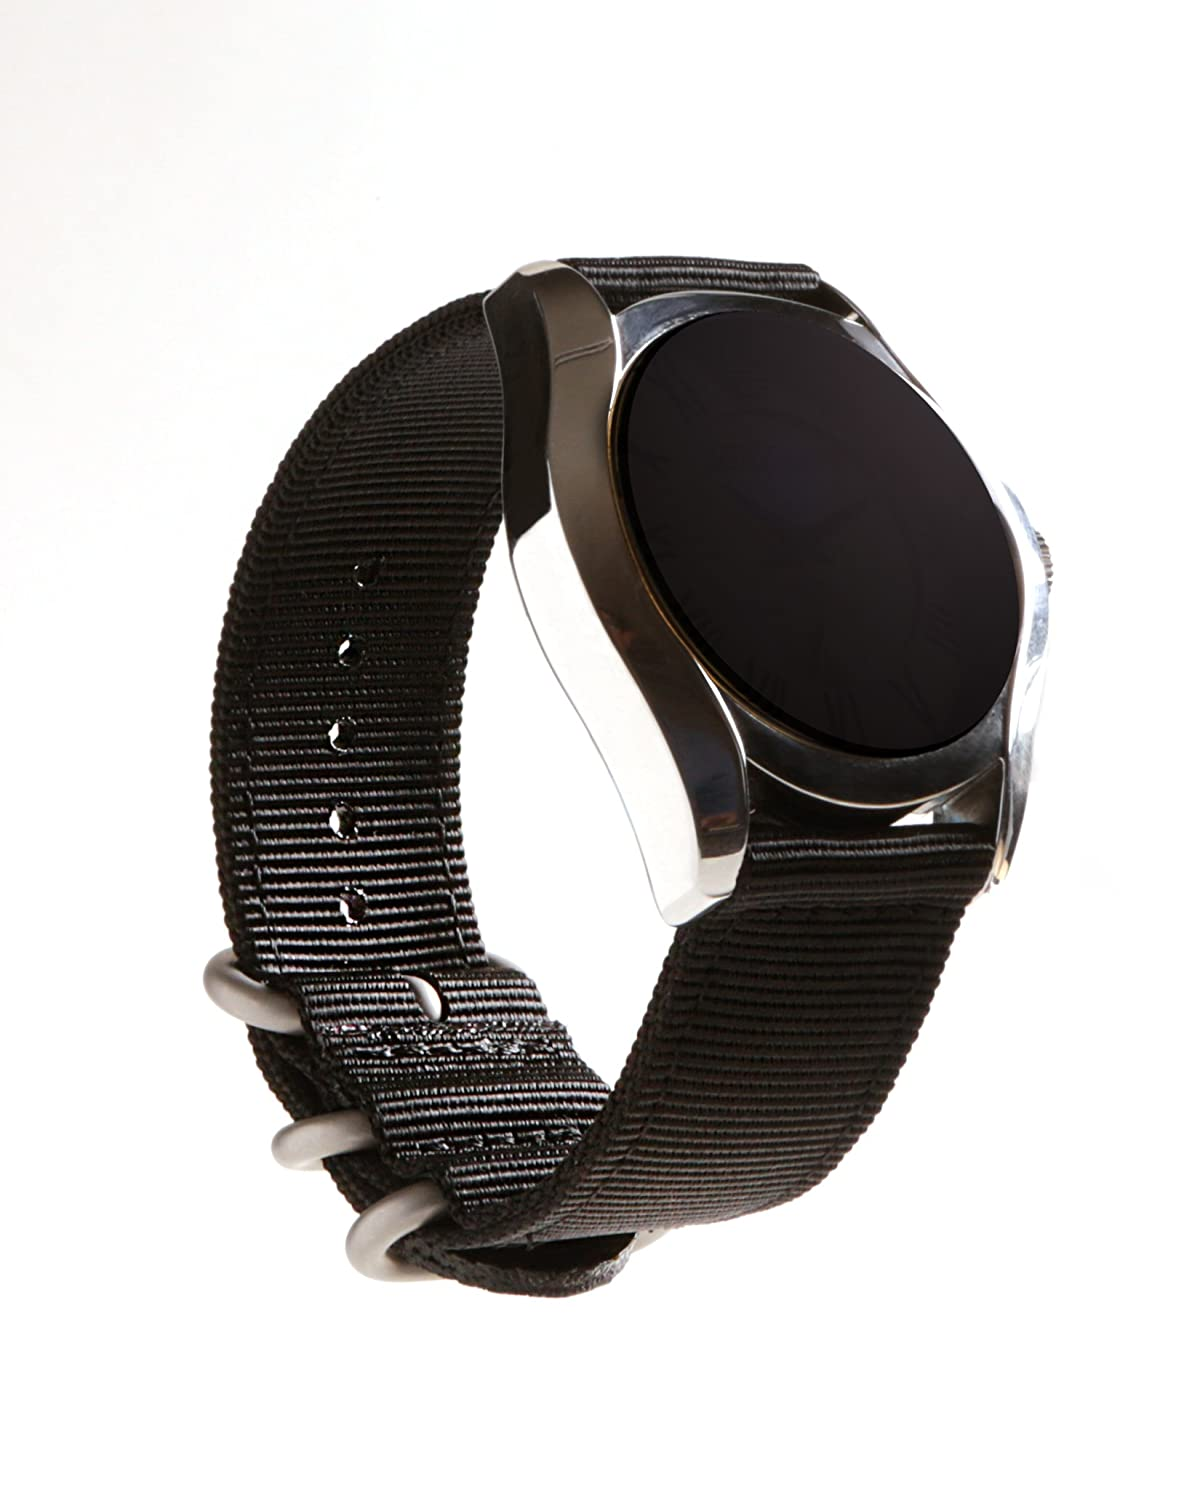 22mm And 24mm Tough Royal Woven Nylon Wrist Band Strap Bracelet with Stainless Steel Buckle 22mm And 24mm Tough Royal Woven Nylon Wrist Band Strap Bracelet with Stainless Steel Buckle Black 24 20mm KB KoolBands 18mm